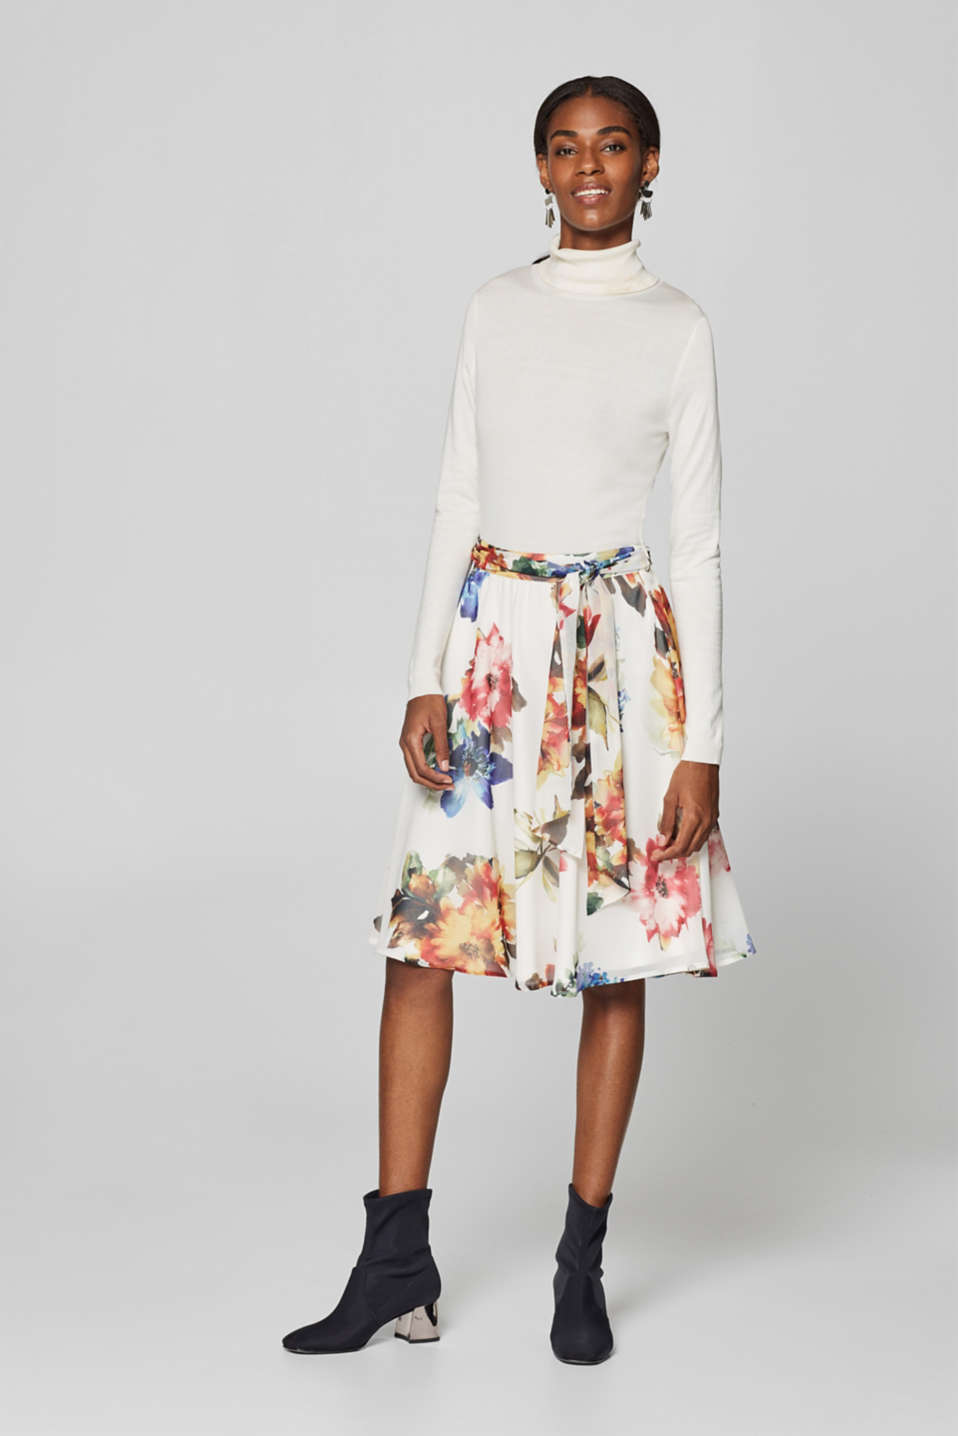 Swirling chiffon skirt with a print